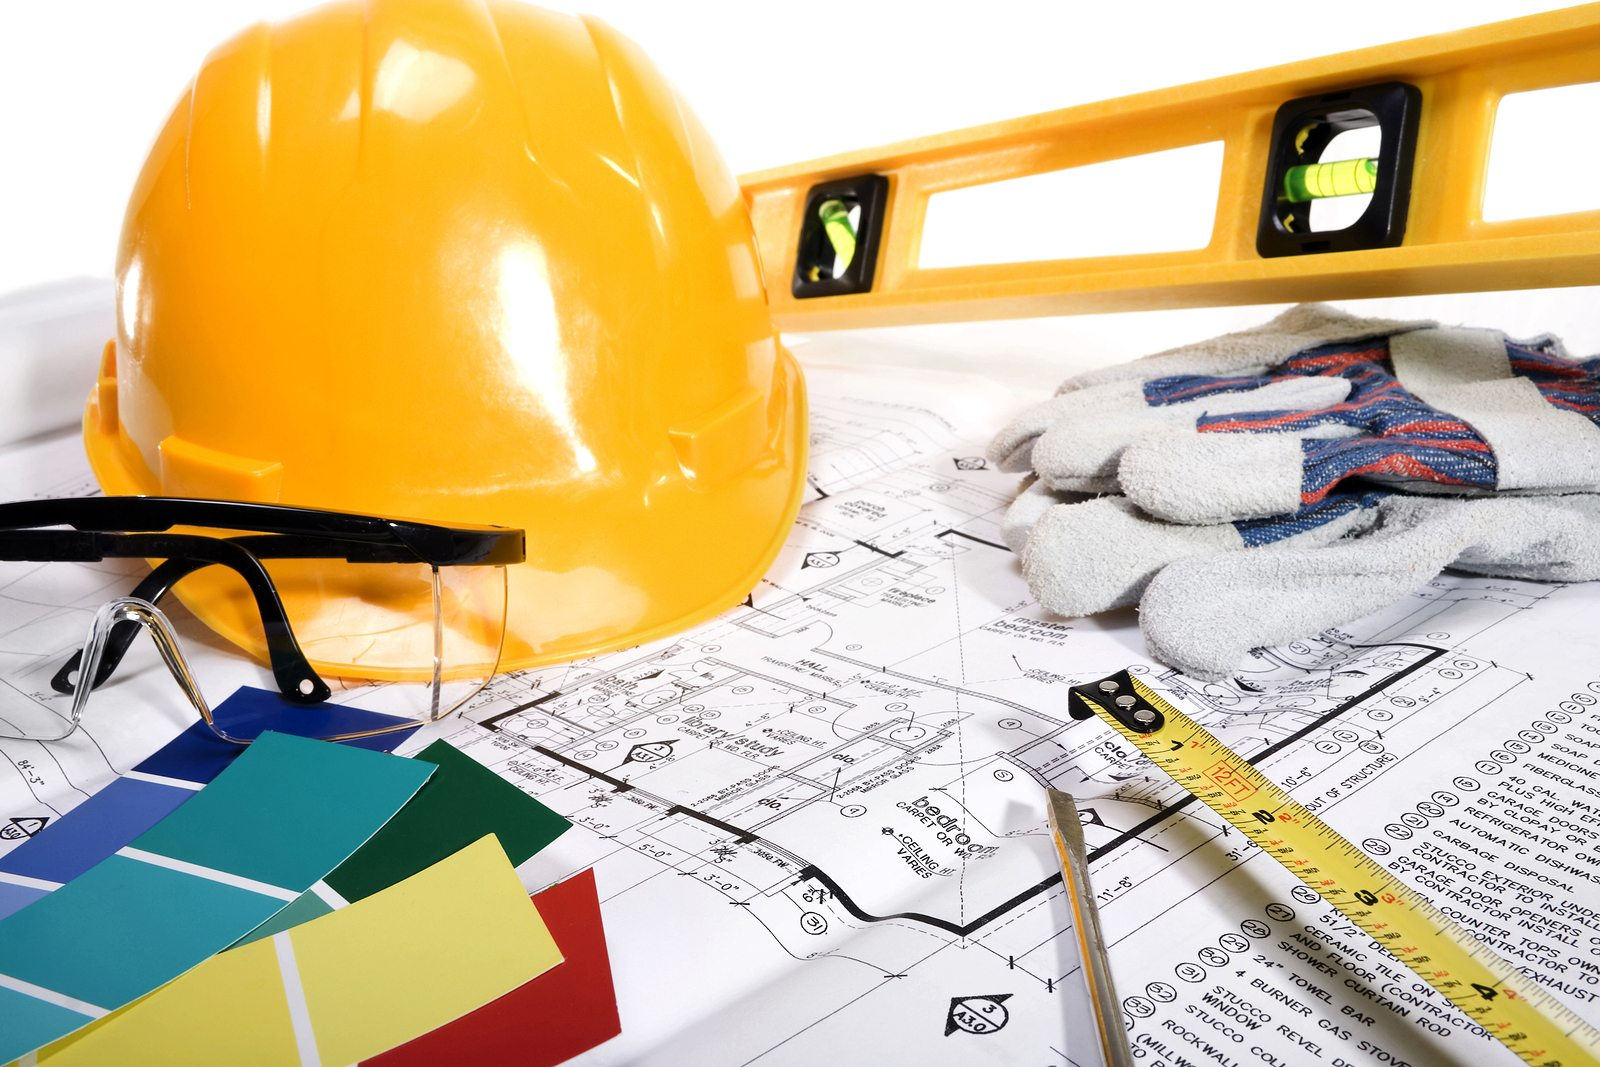 5 Reasons To Choose Professionals For Your Home Remodel Project   Eagle Construction & Remodeling